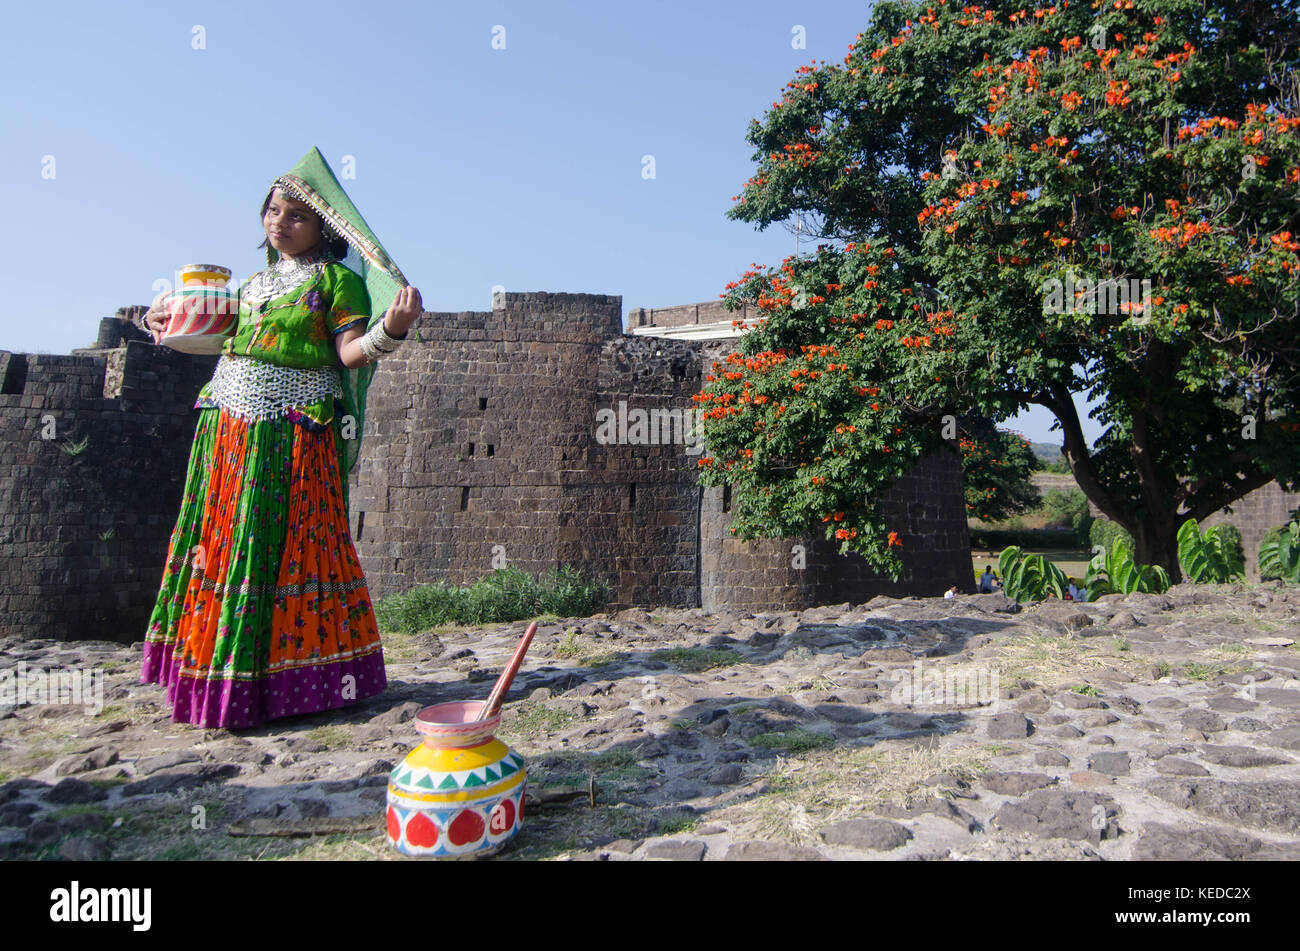 Indian child dancer at Chand Minar - Stock Image